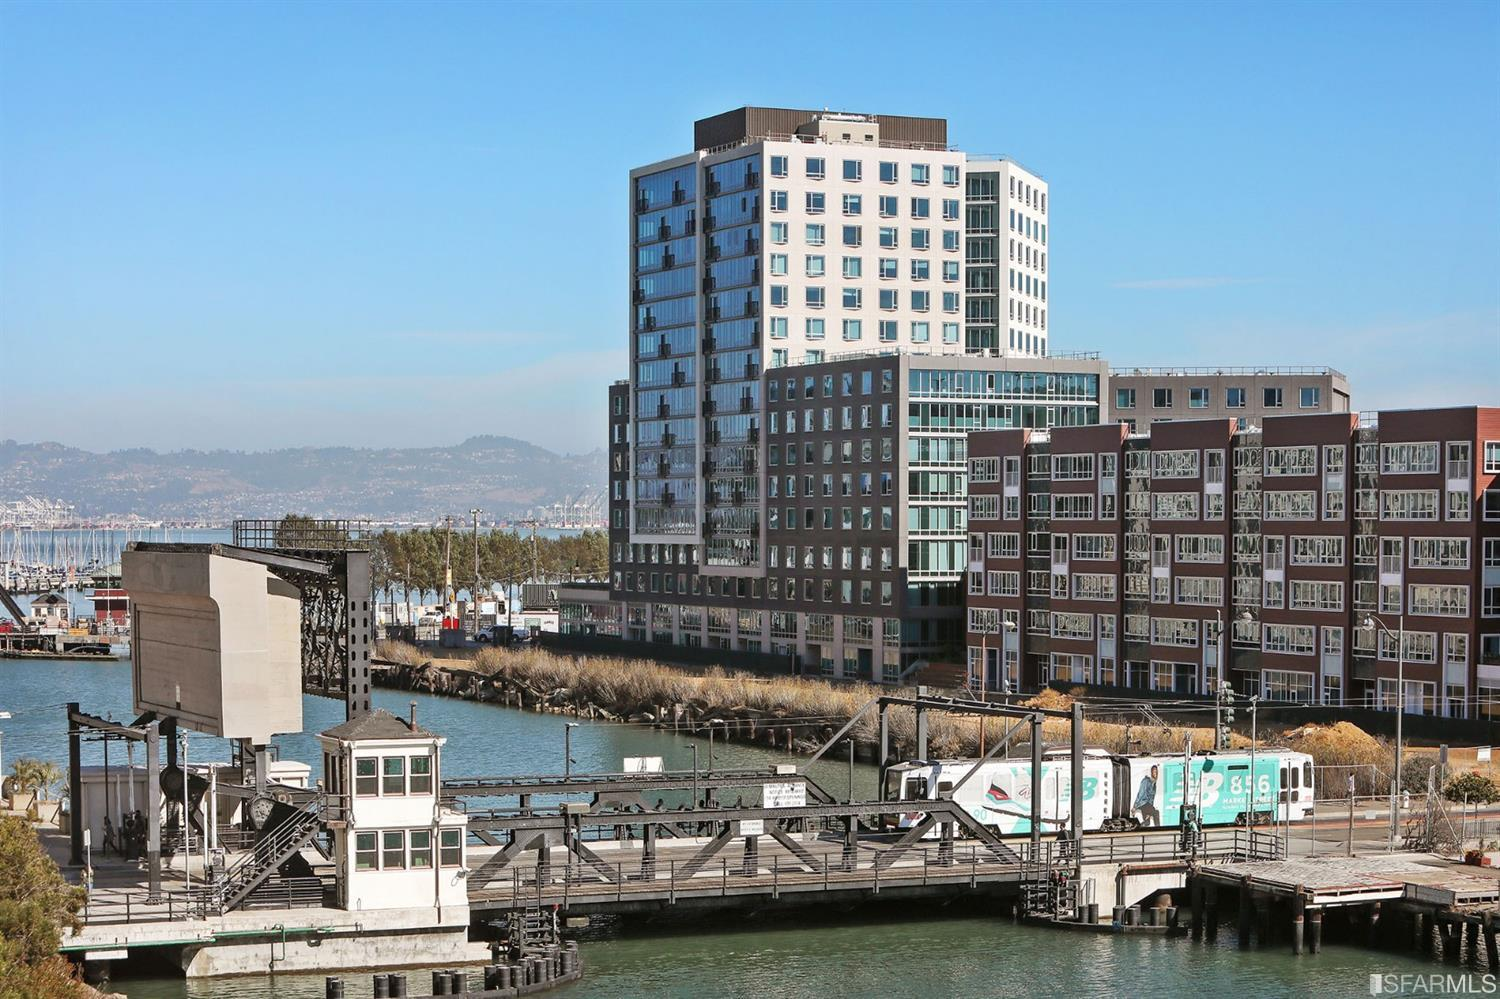 Mission Bay Reaches End of Condo Construction Boom  www